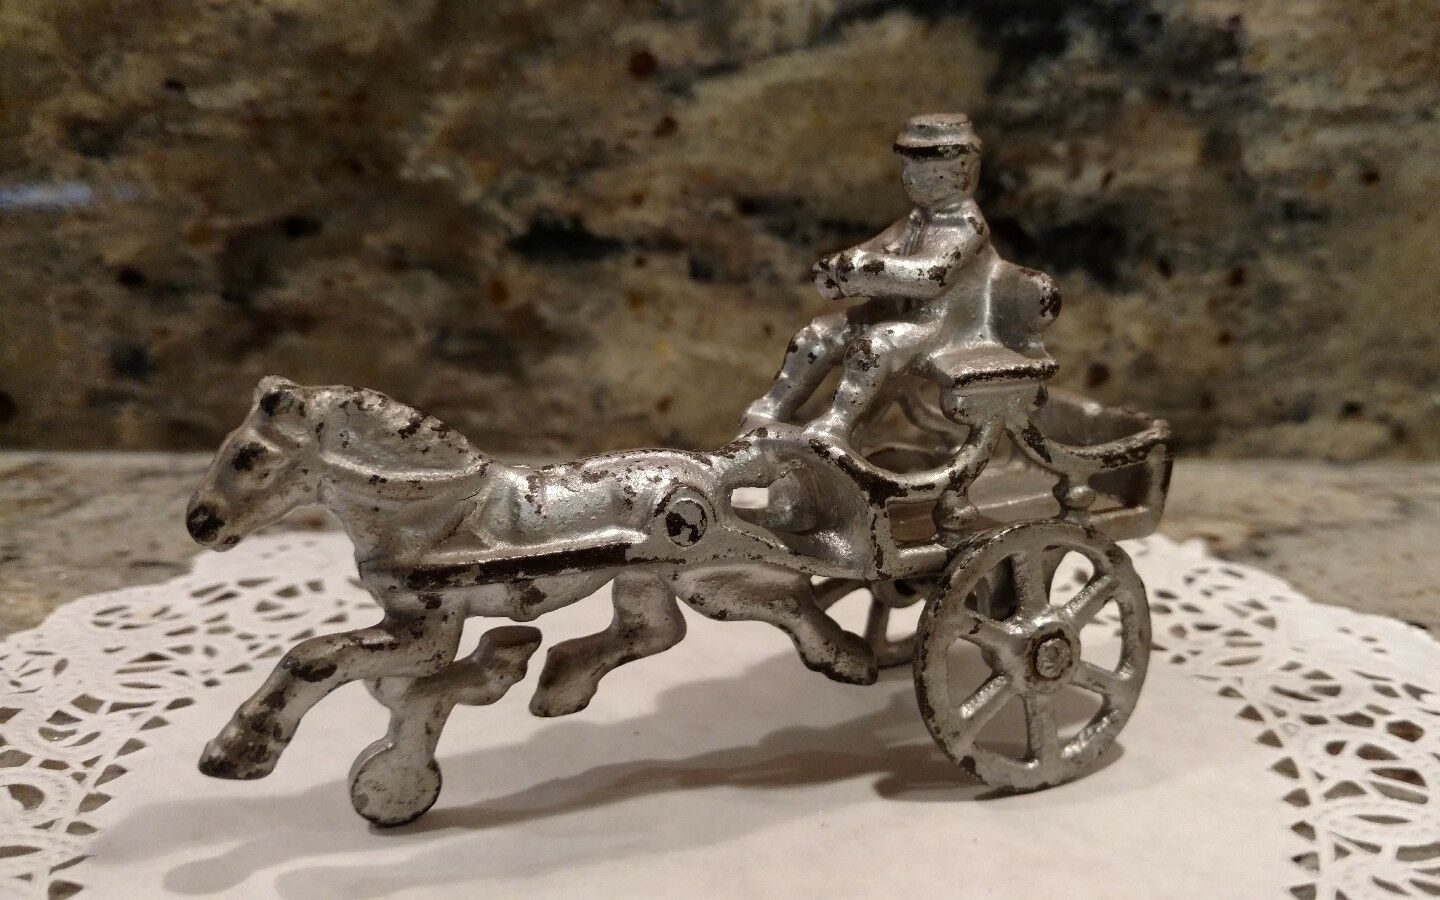 ANTIQUE 1910 DENT CAST IRON HORSE DRAWN  CART WITH RIDER